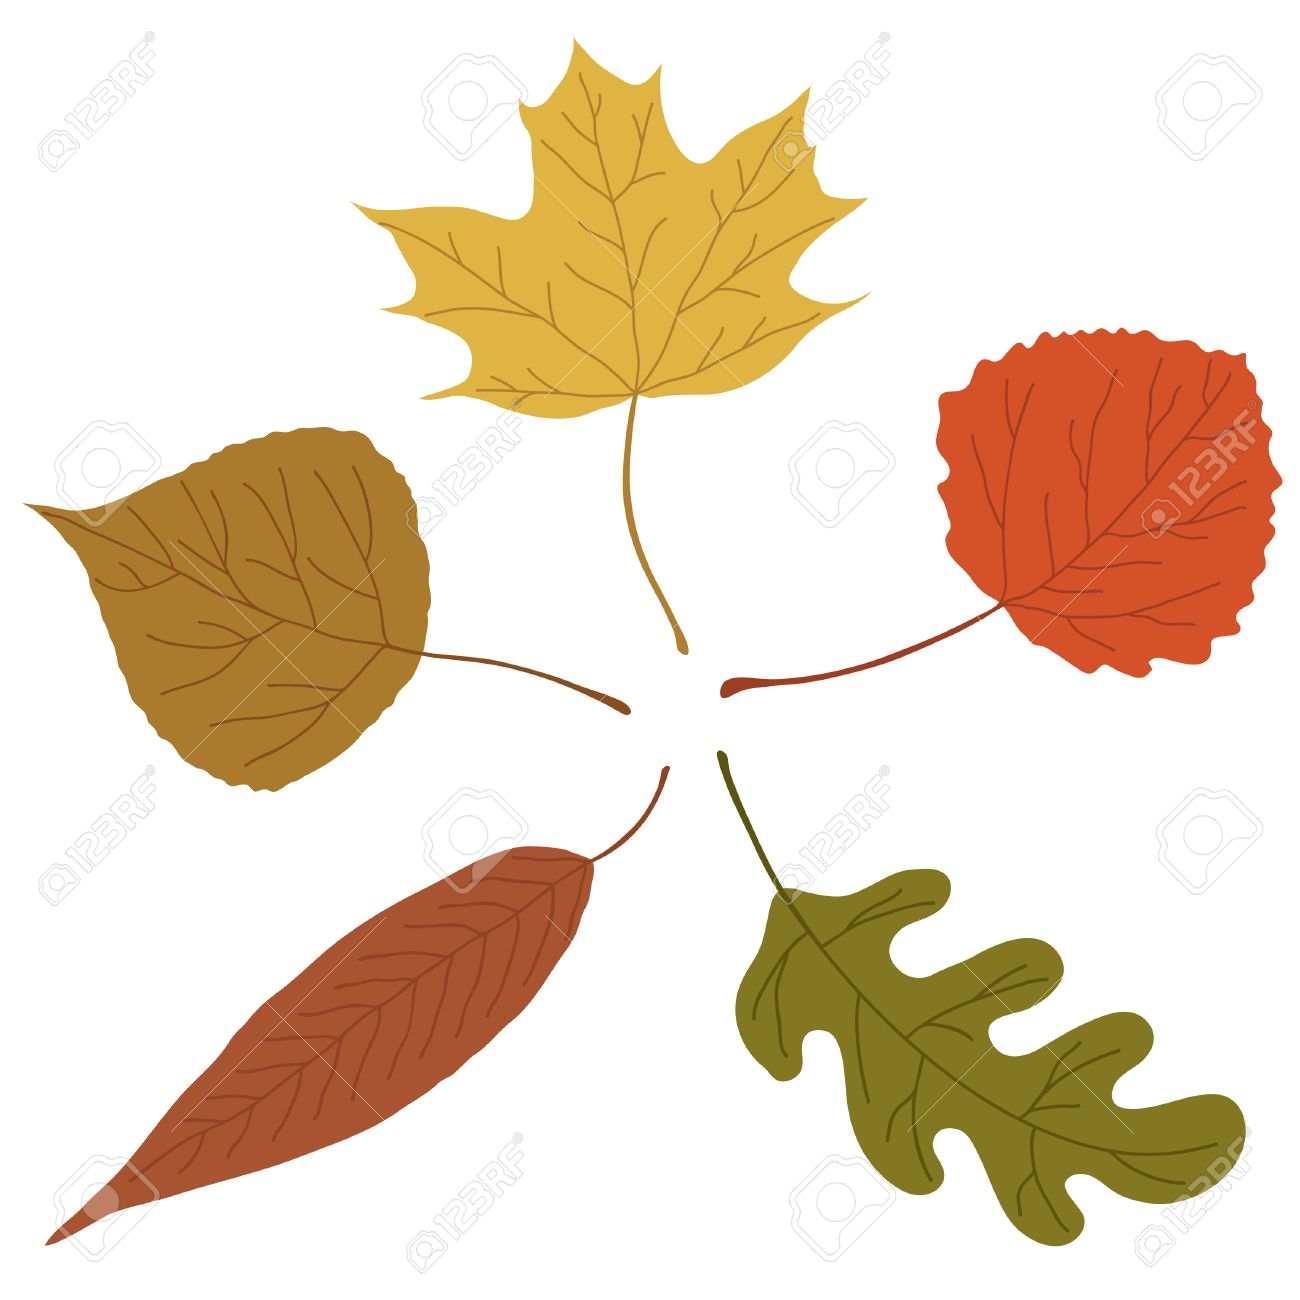 Five autumn leaves on white background. Stock Vector - 7530233